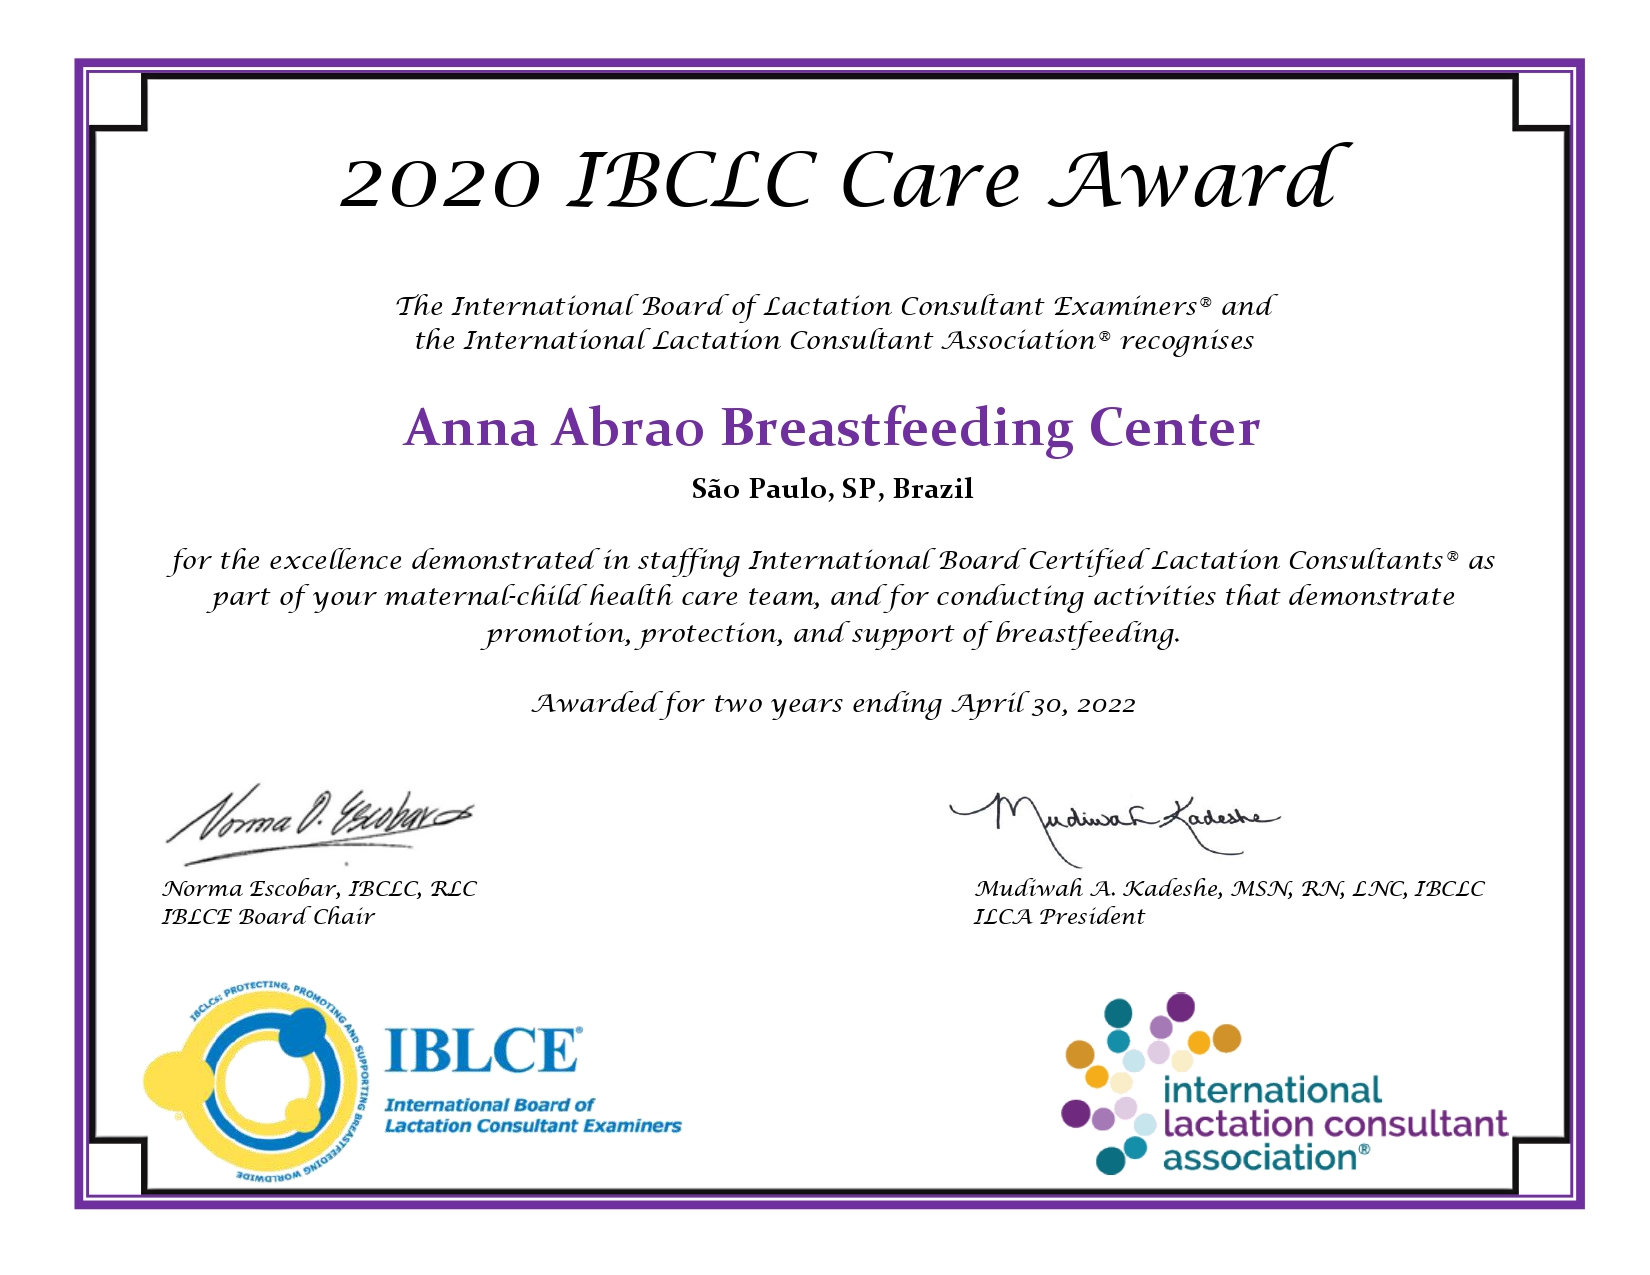 Anna Abrao Breastfeeding Center certificate page 0001